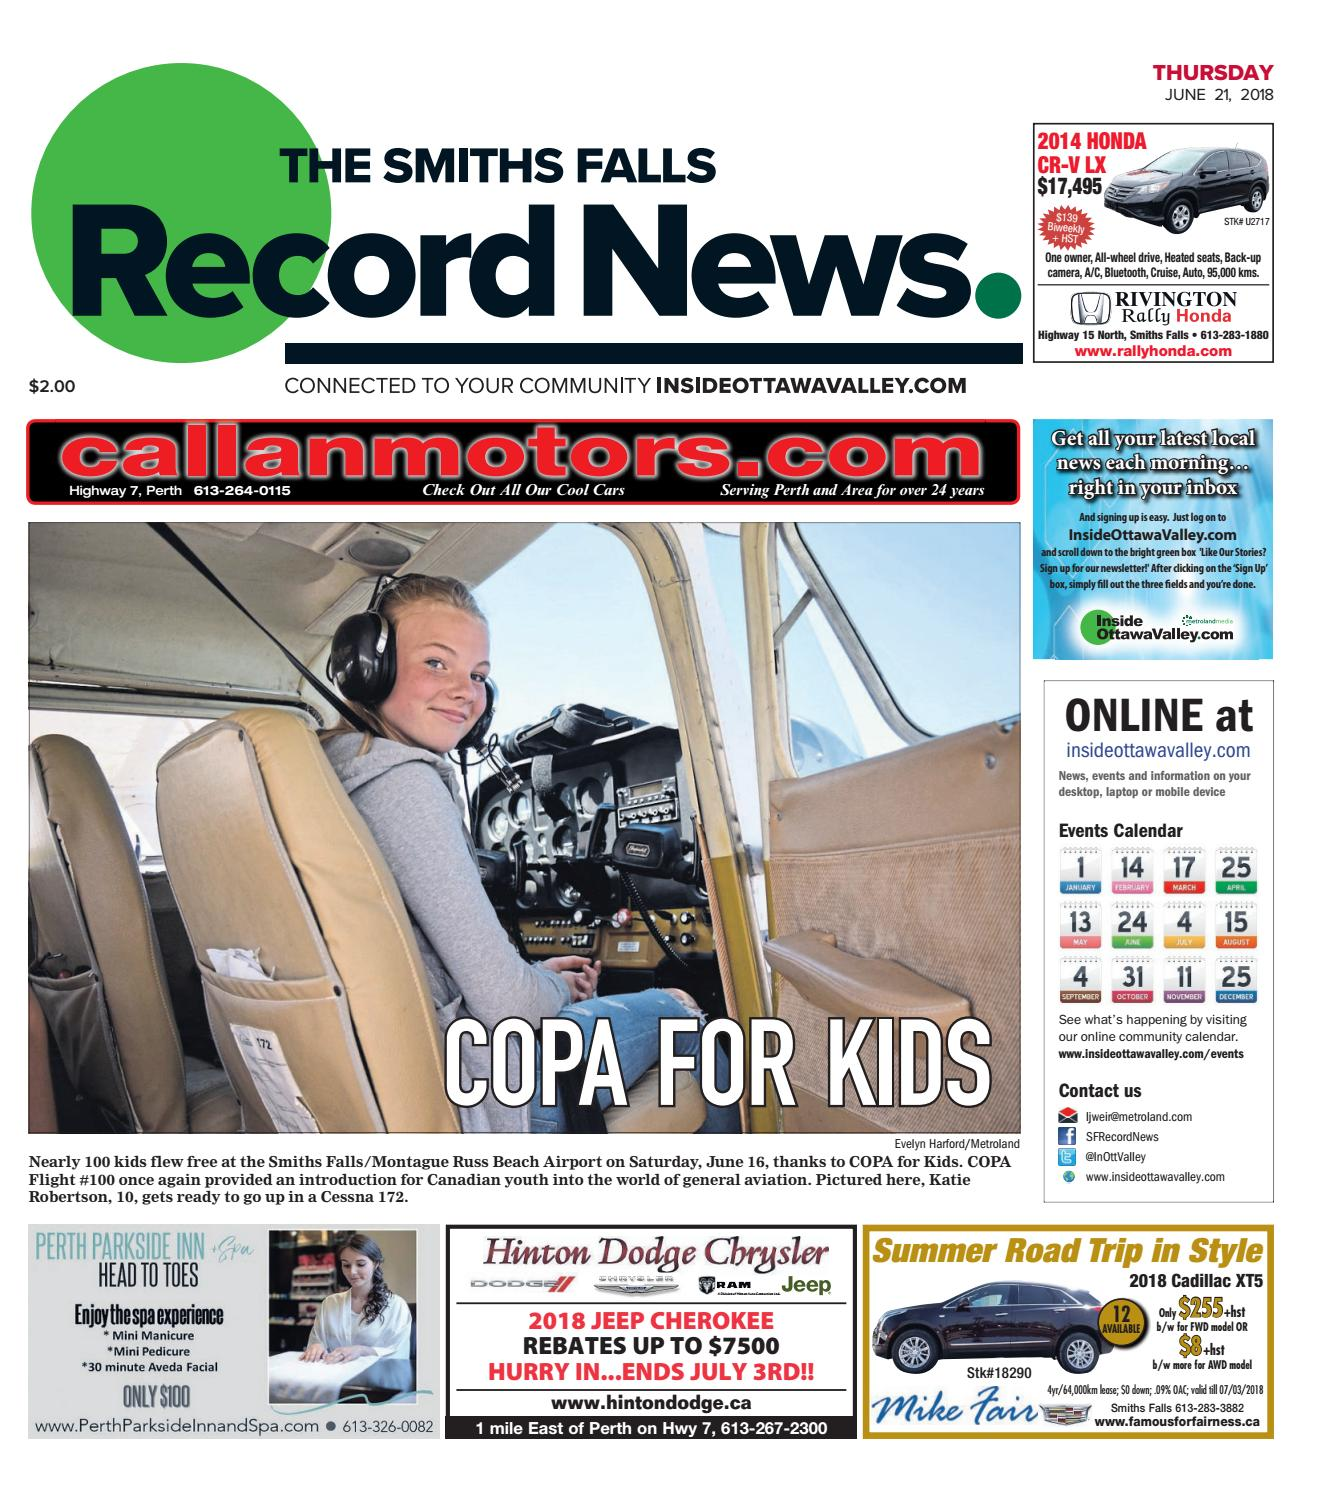 470dce6f9f1 Otv s a 20180621 by Metroland East - Smiths Falls Record News - issuu